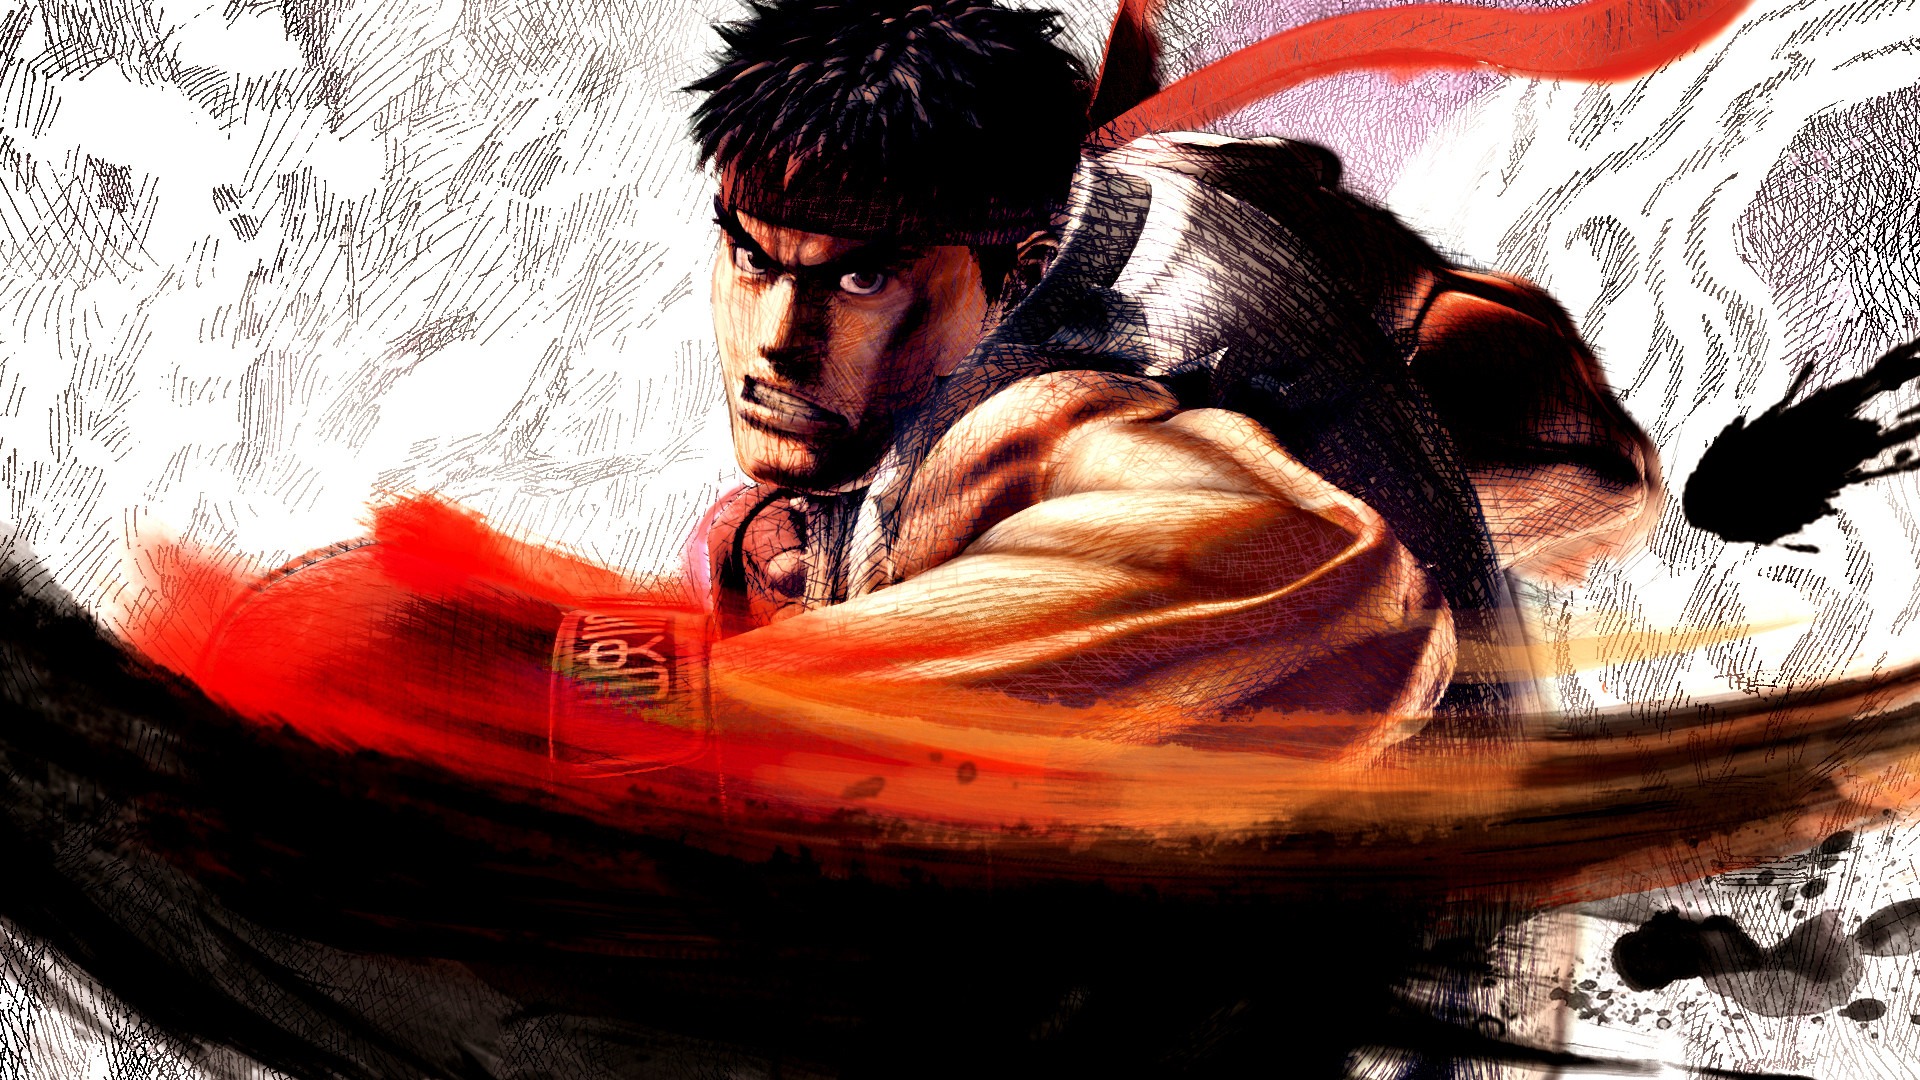 street fighter ryu wallpaper (61+ images)